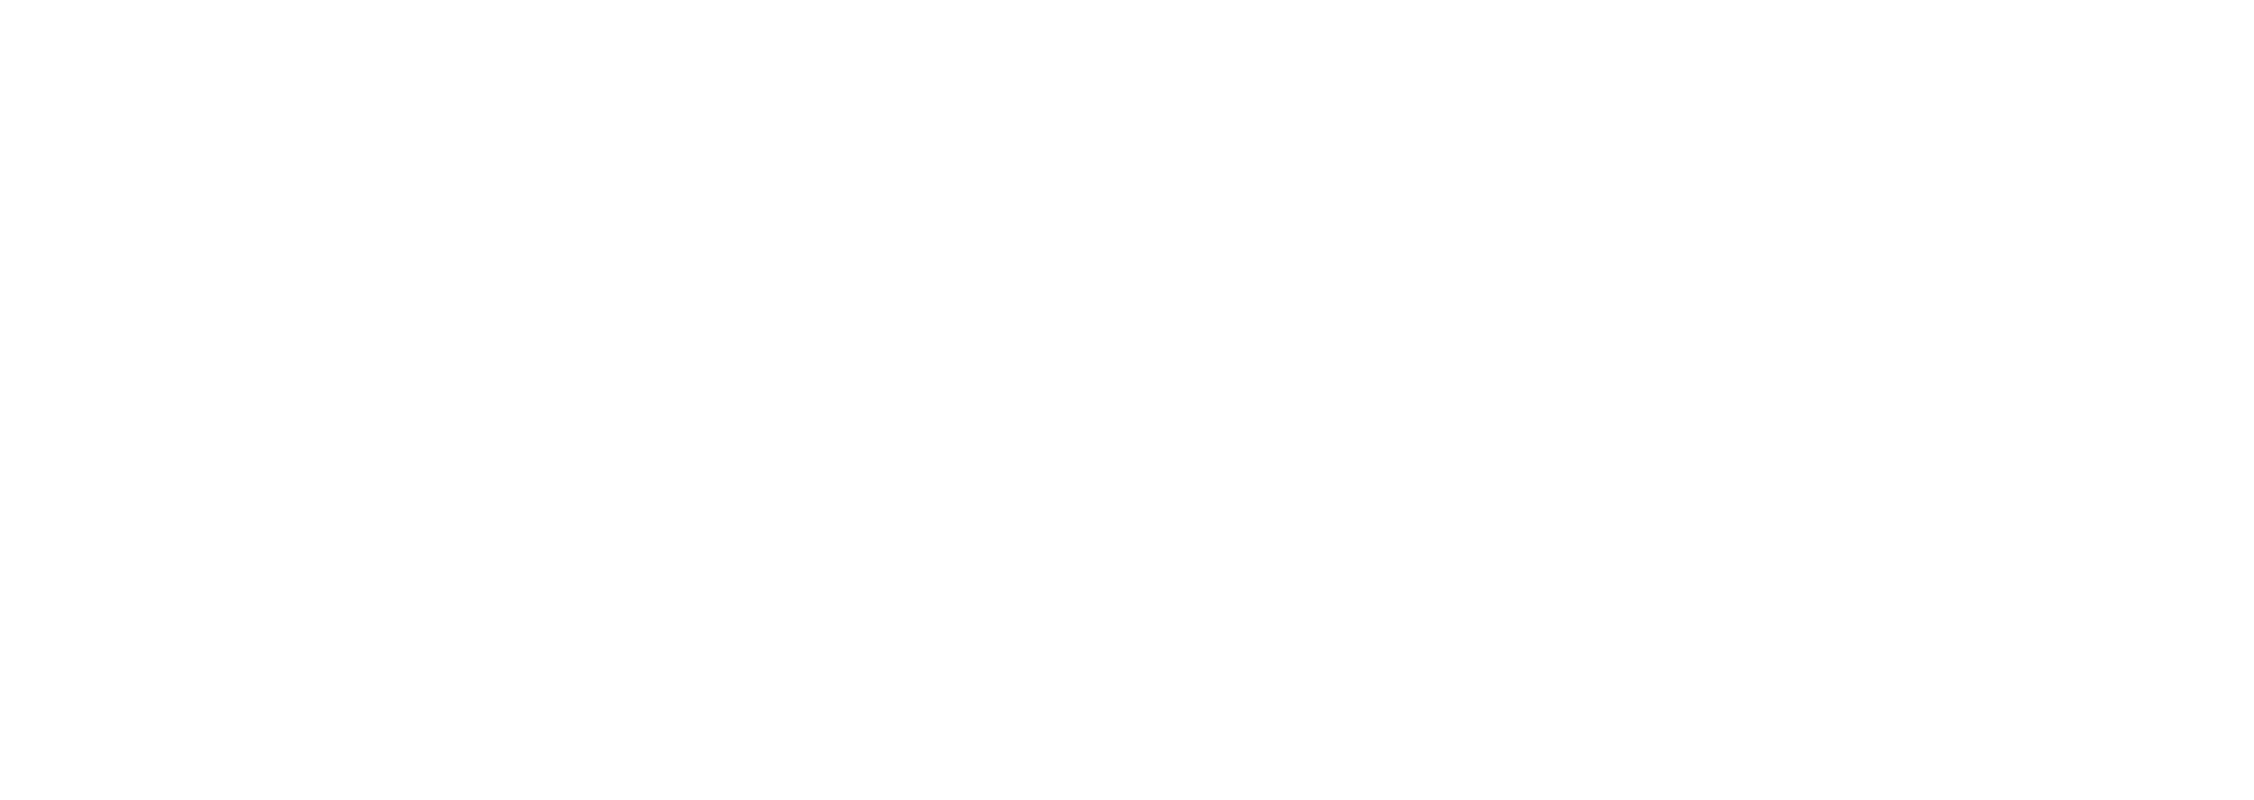 Actionable